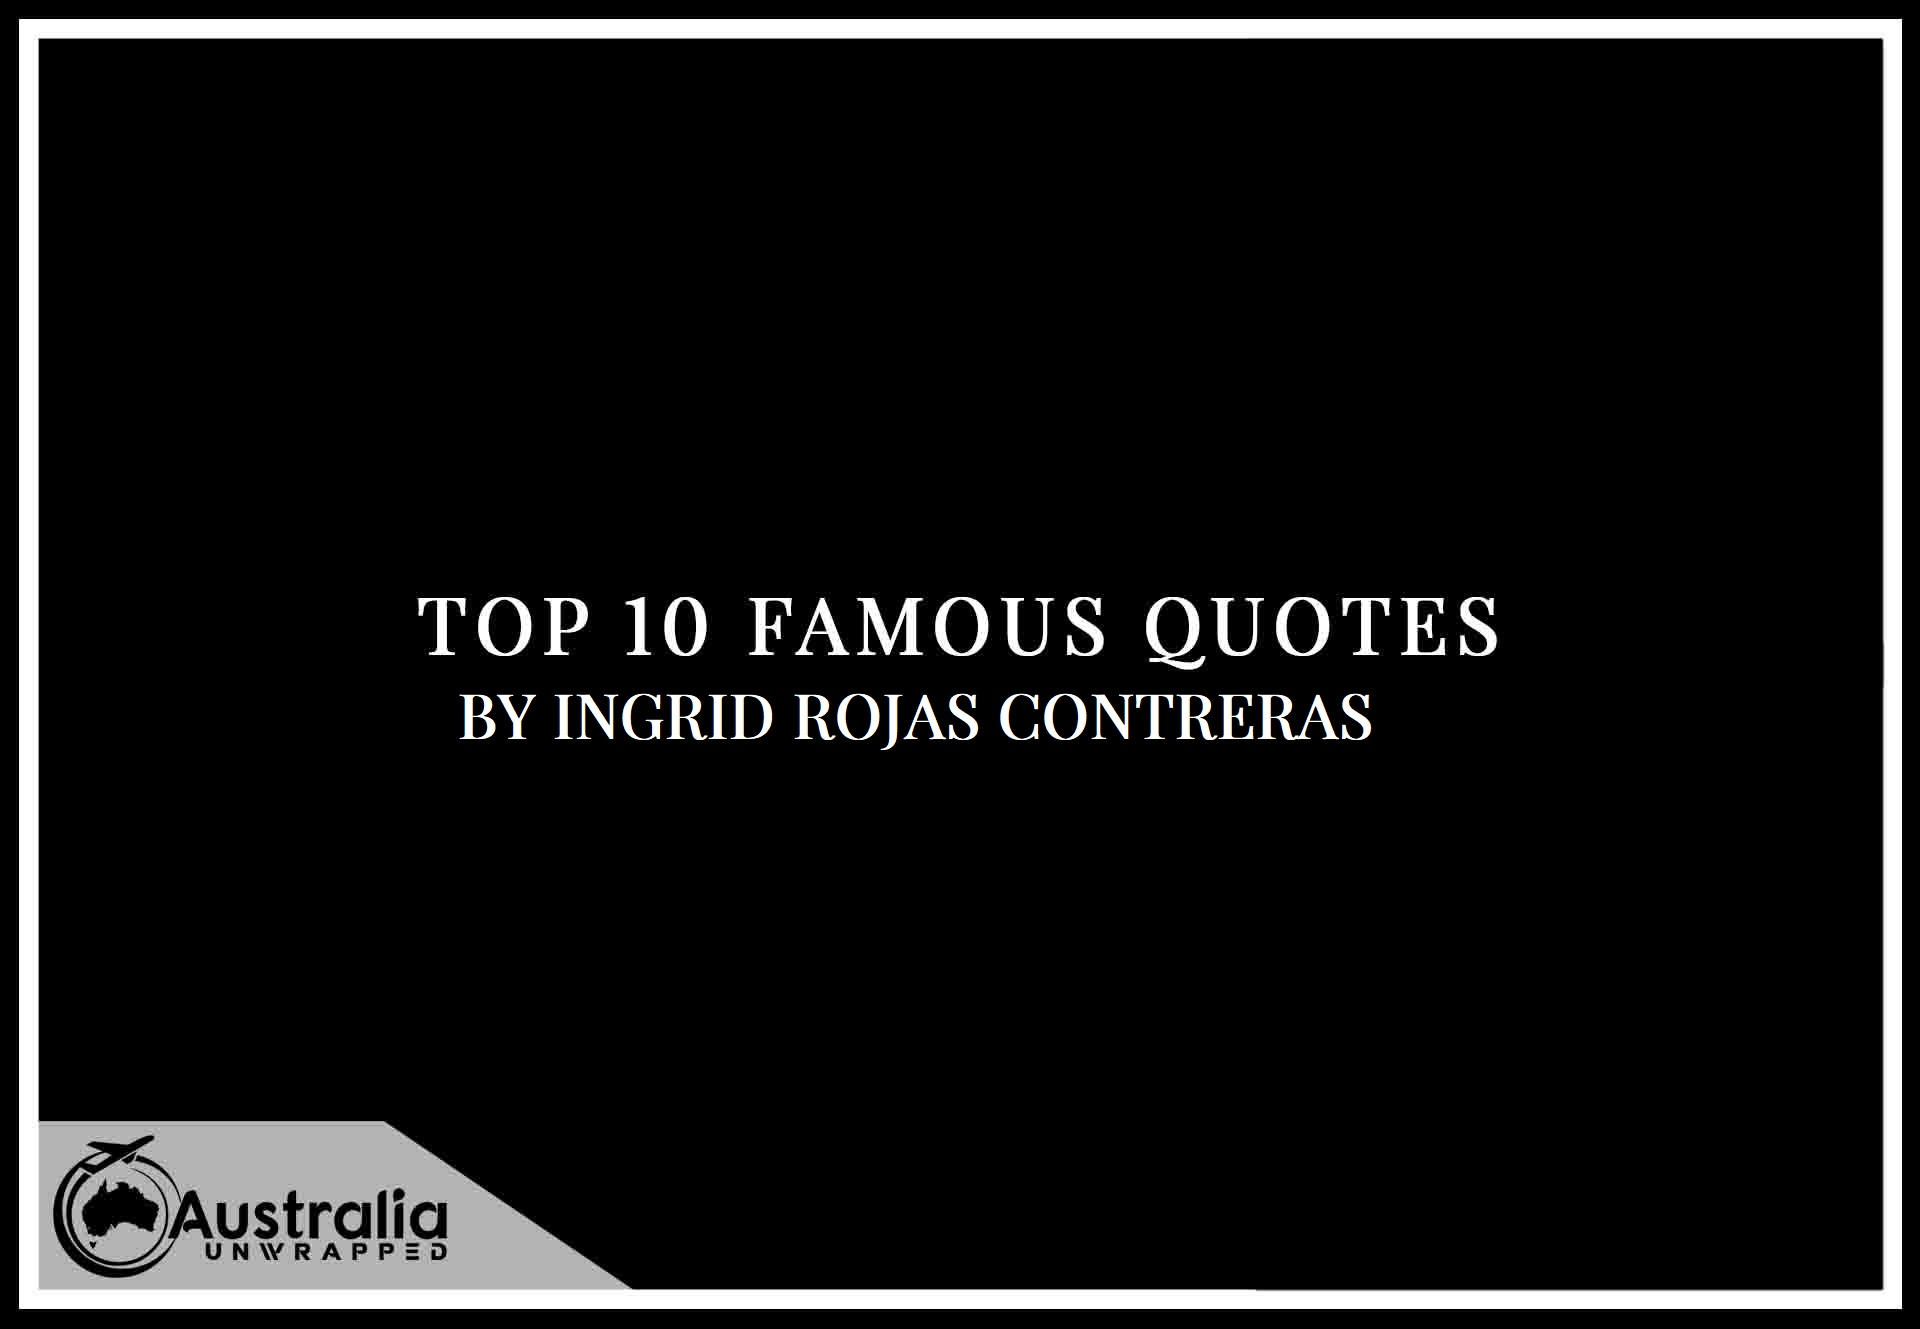 Top 10 Famous Quotes by Author Ingrid Rojas Contreras